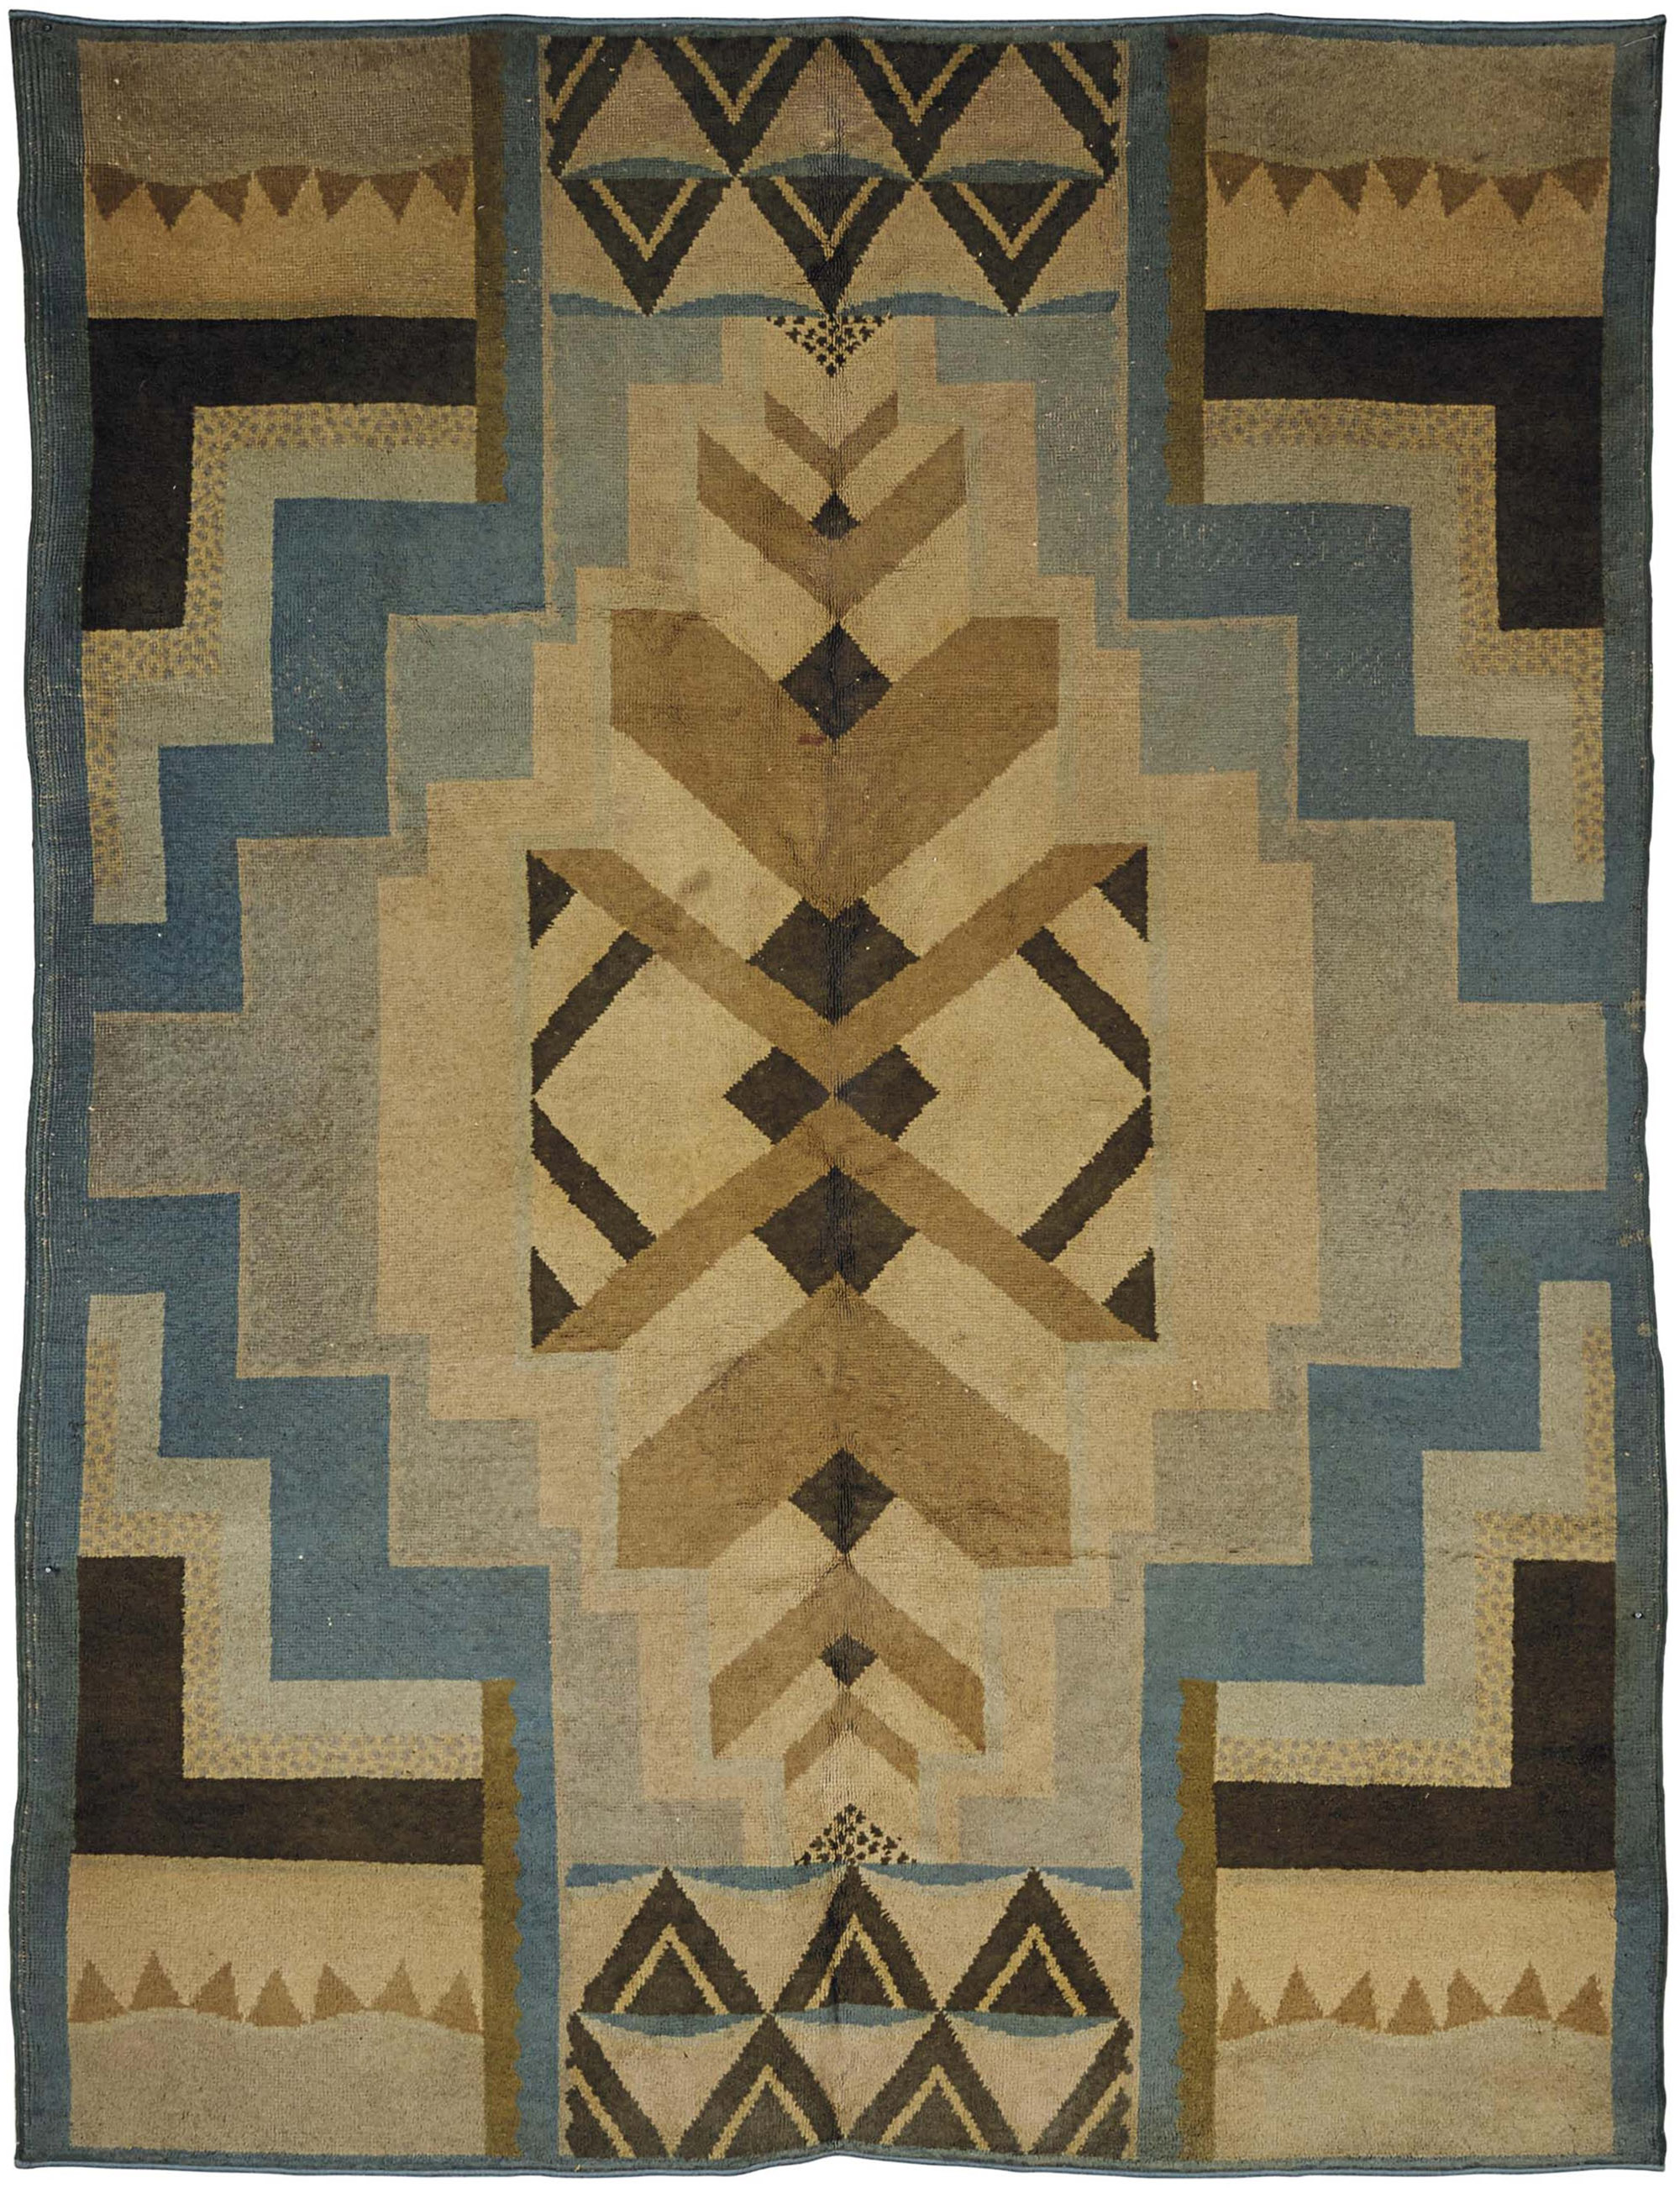 Ideal Art Deco Rugs by Doris Leslie Blau QD62